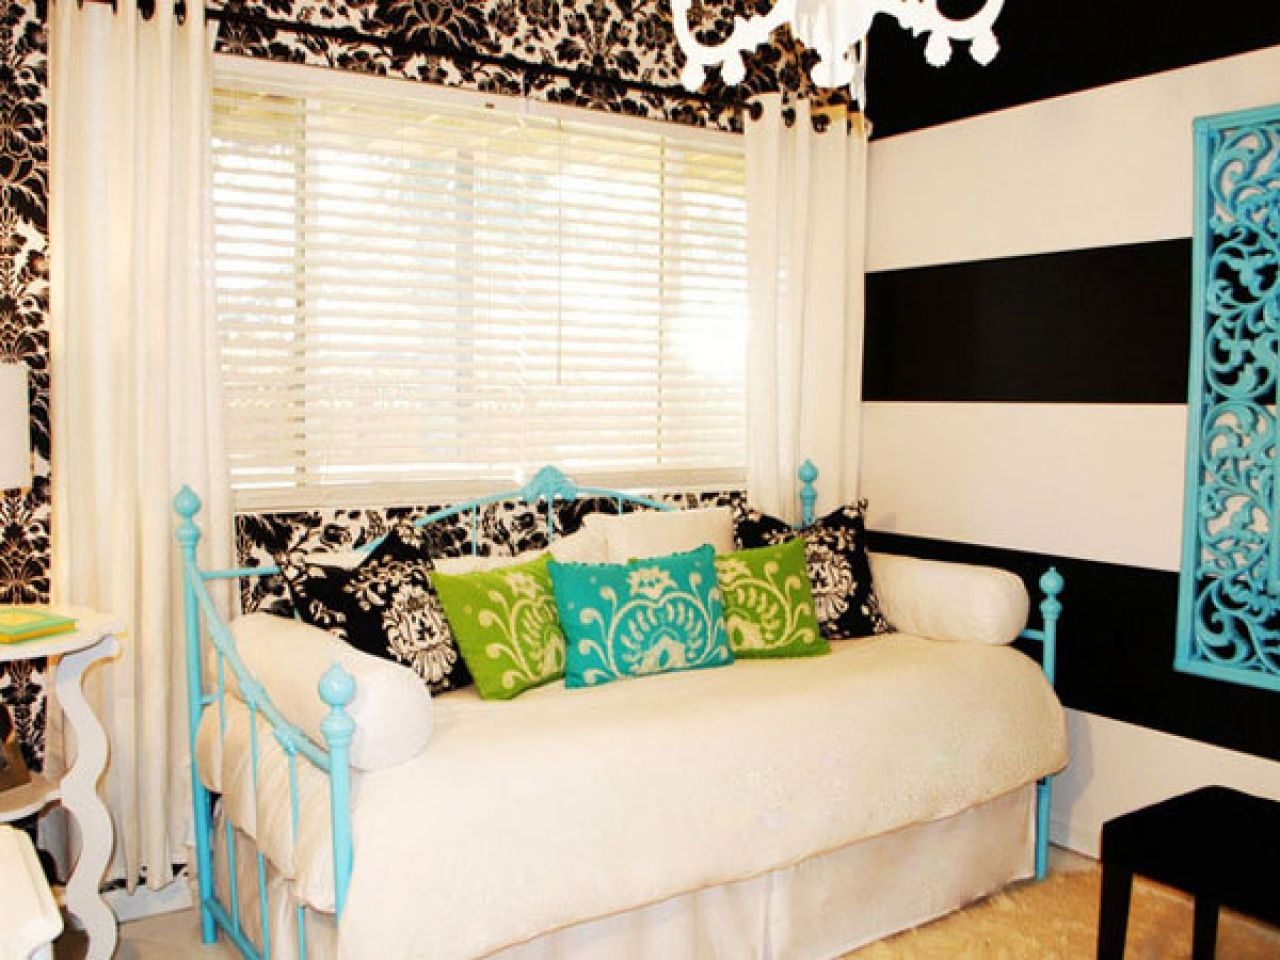 Black and white bedroom ideas for teenage girls - Cool And Feminine Teen Girls Room Ideas Charming Black White Stripe And Black Floral Wall